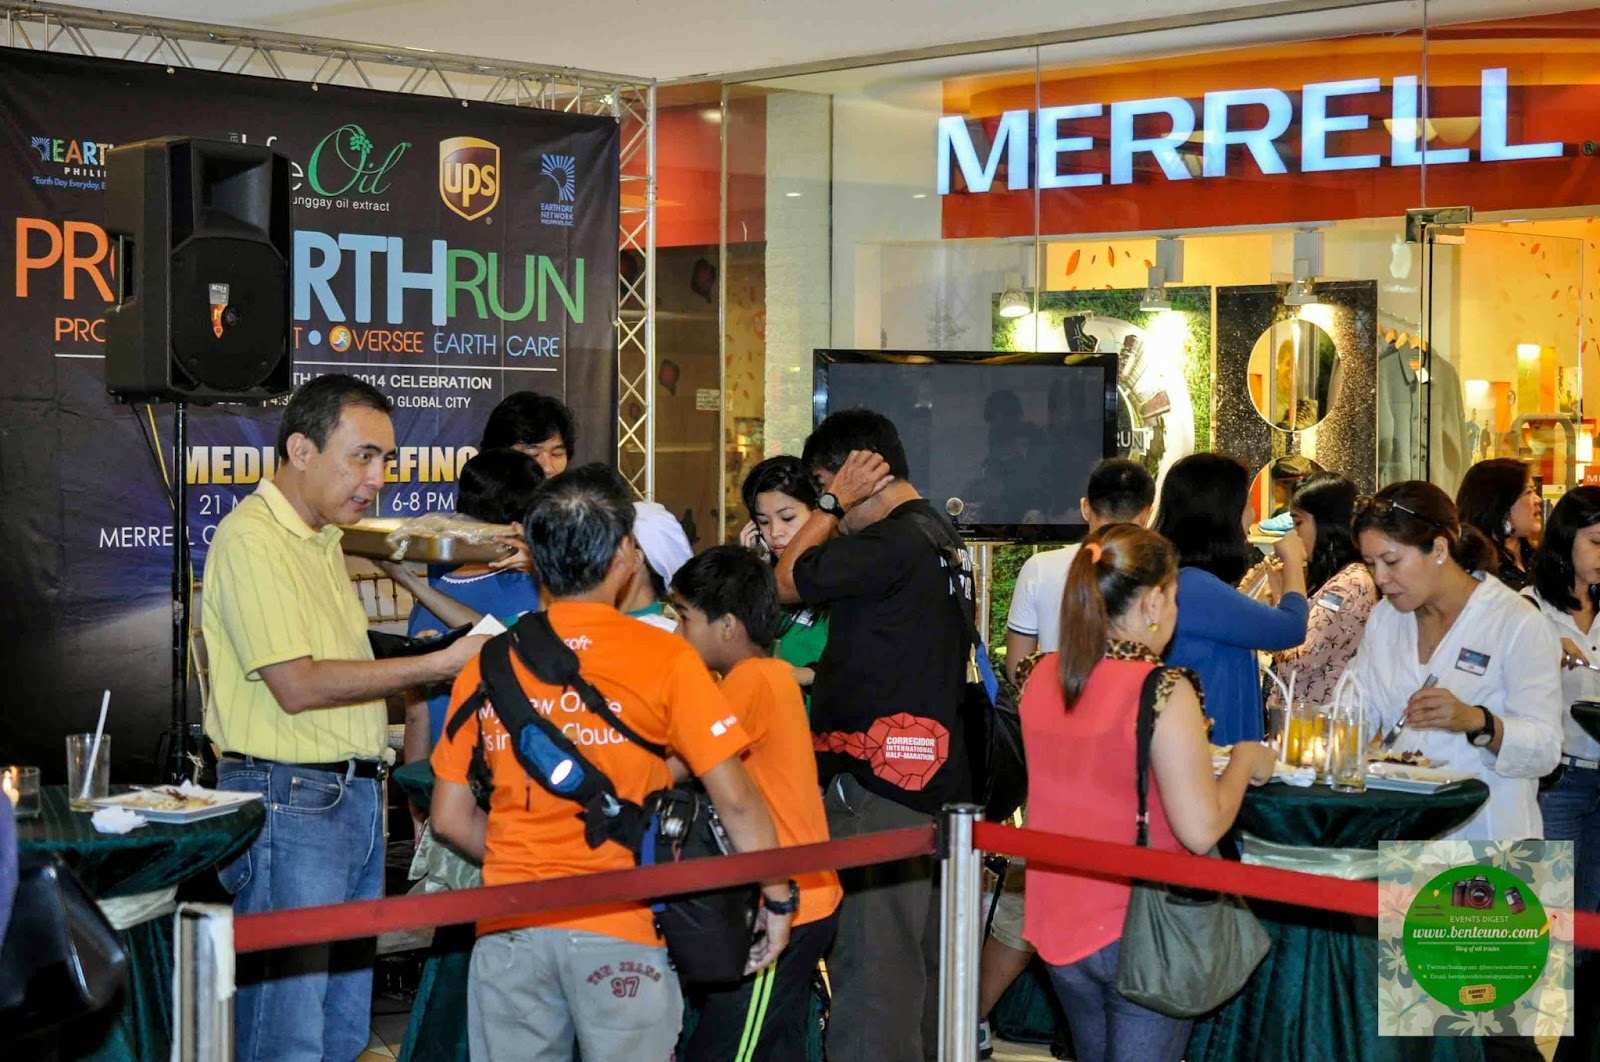 Pro Earth Run Media Briefing at Merrell Concept Store